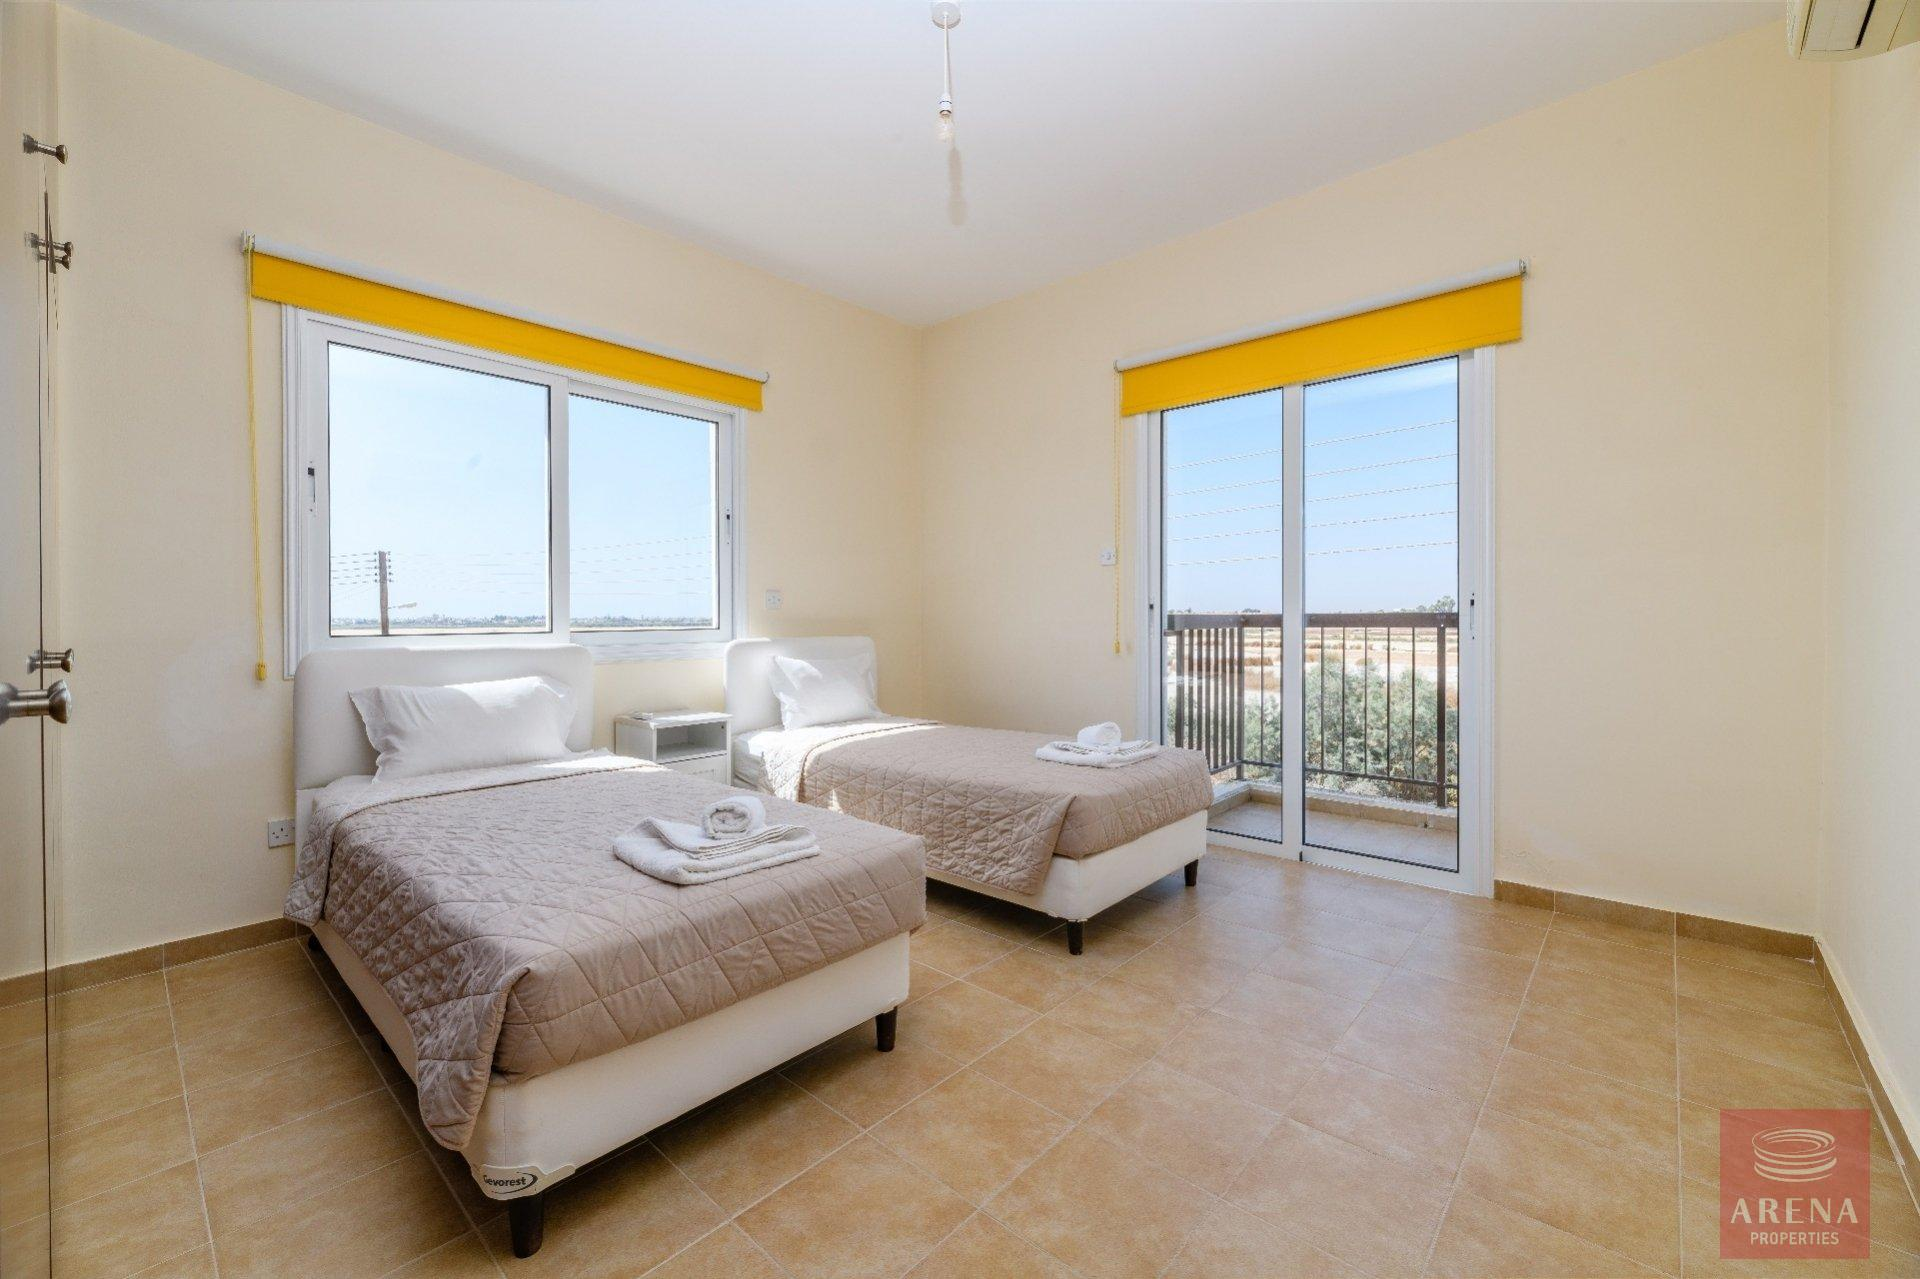 semi-detached house in paralimni for sale - bedroom